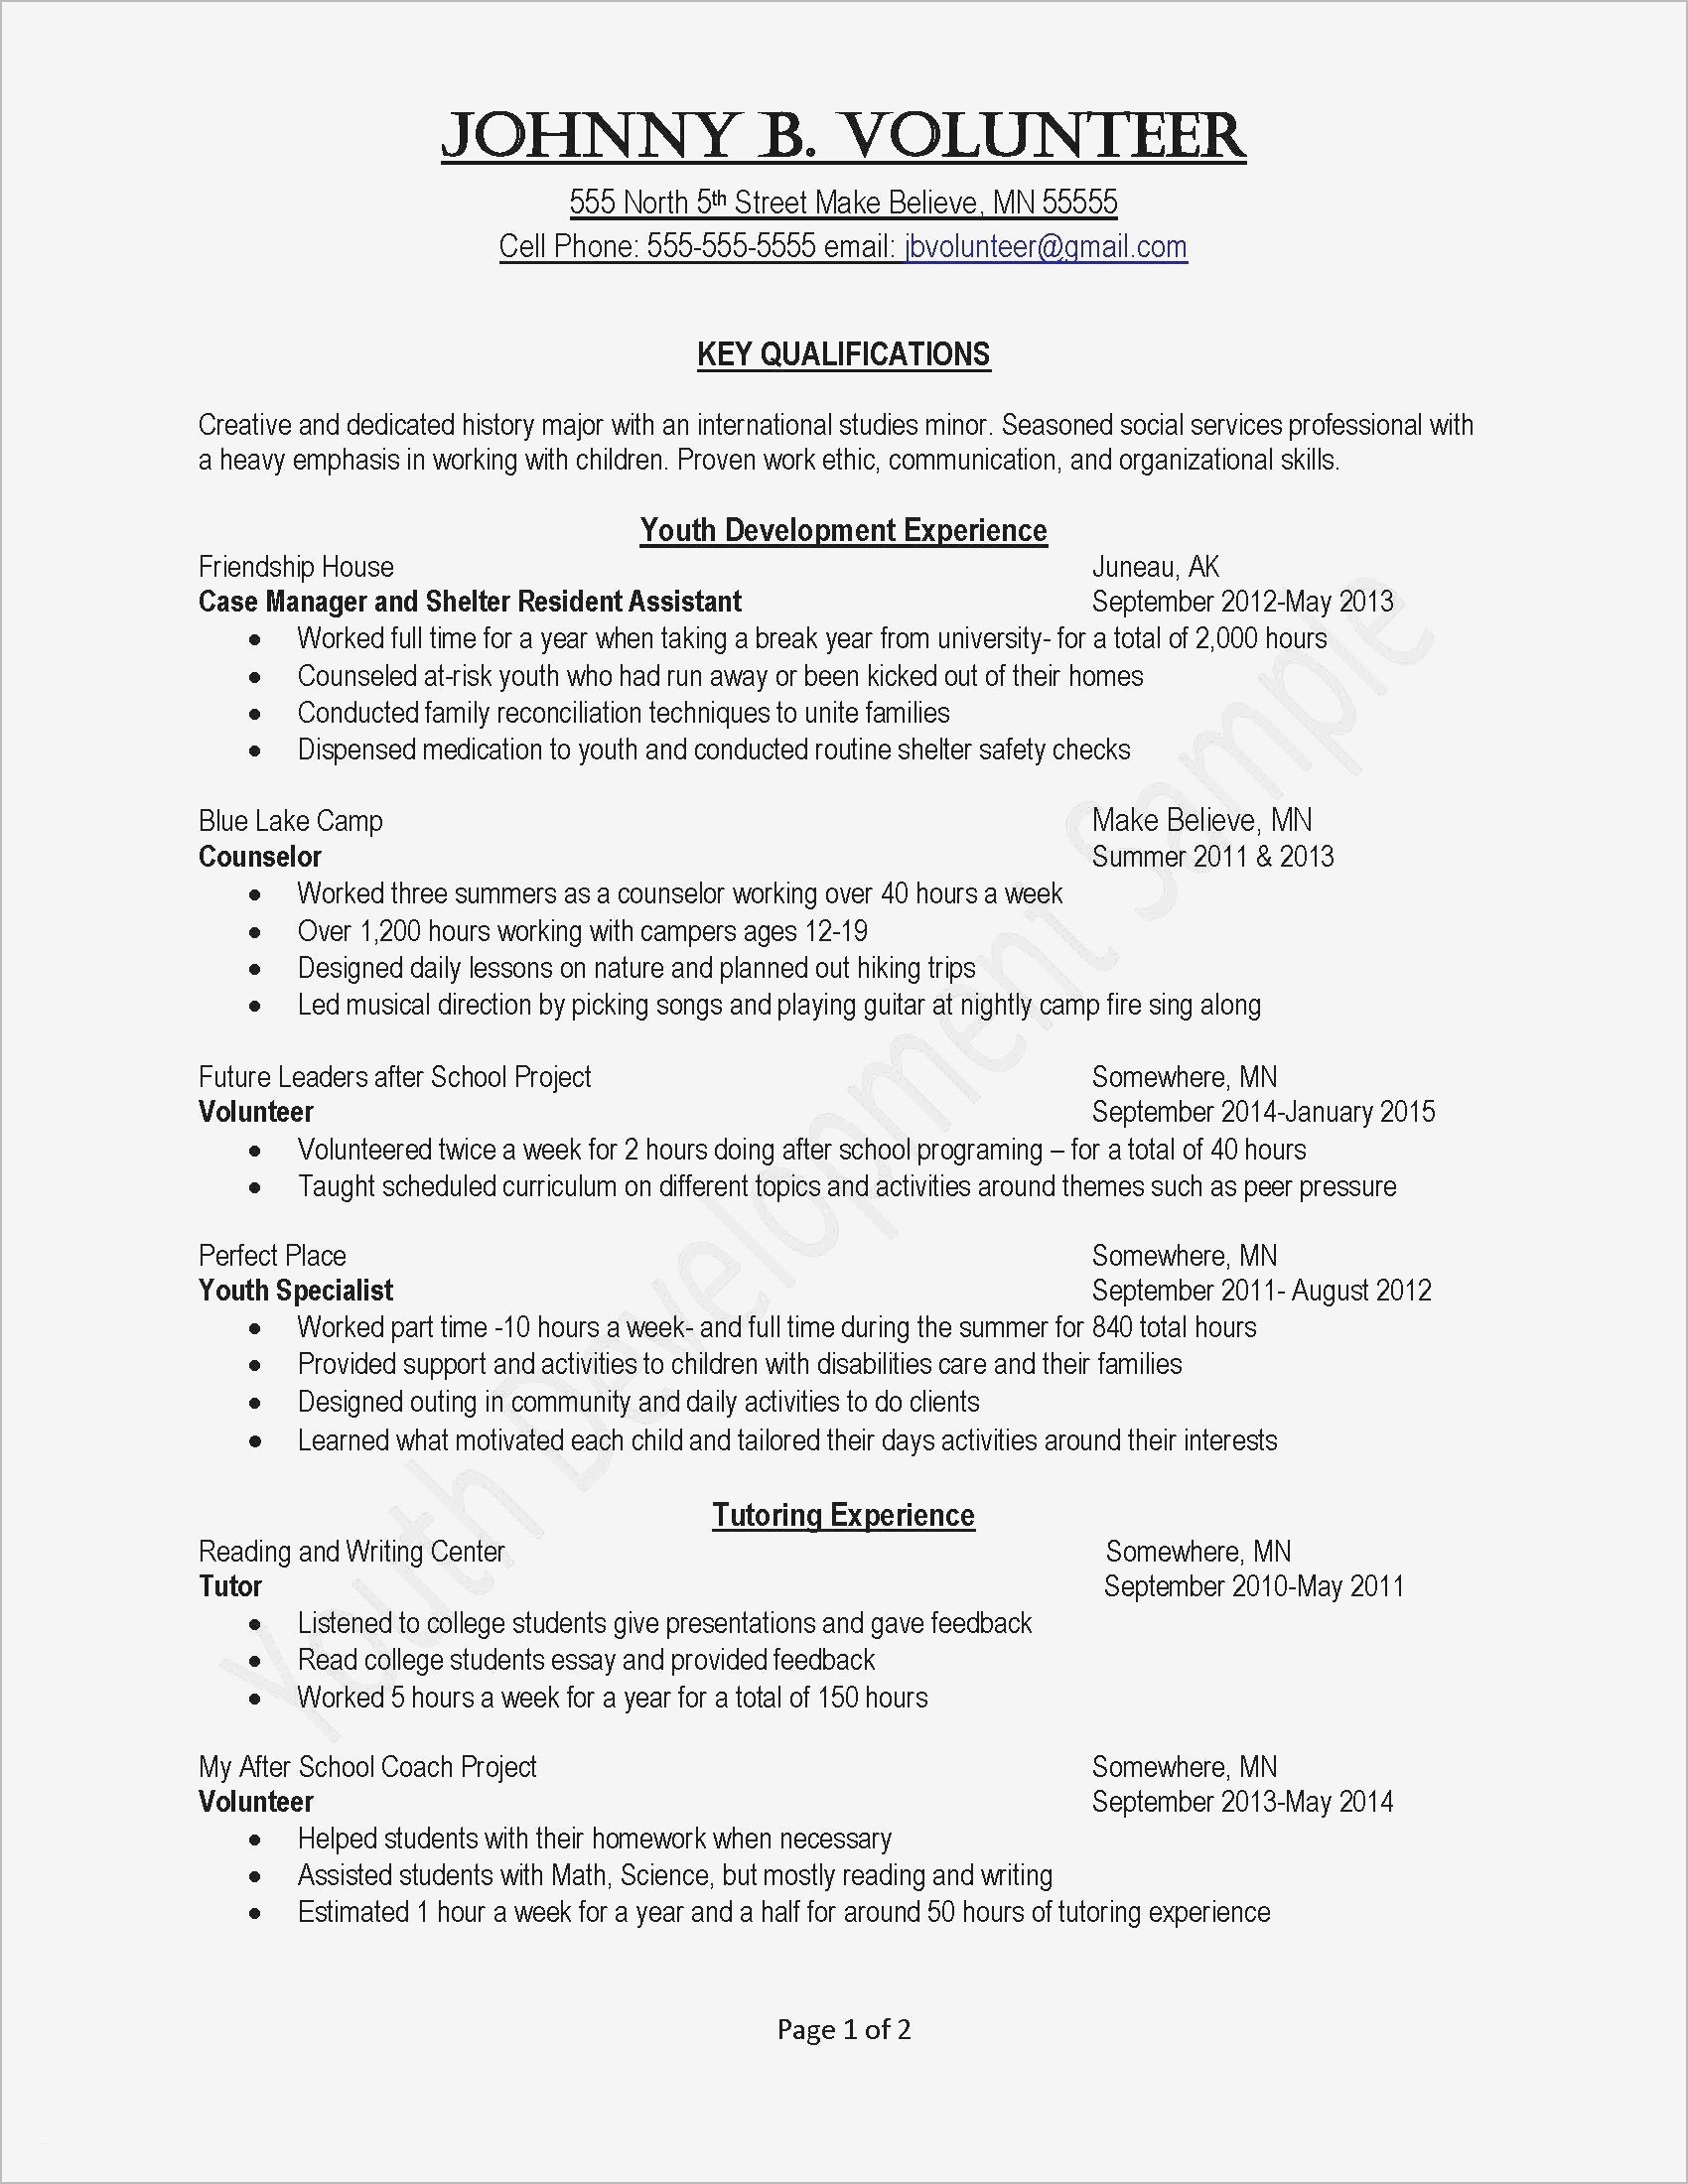 Clinical Trial Close Out Letter Template - Leadership Resume Template Best Job Fer Letter Template Us Copy